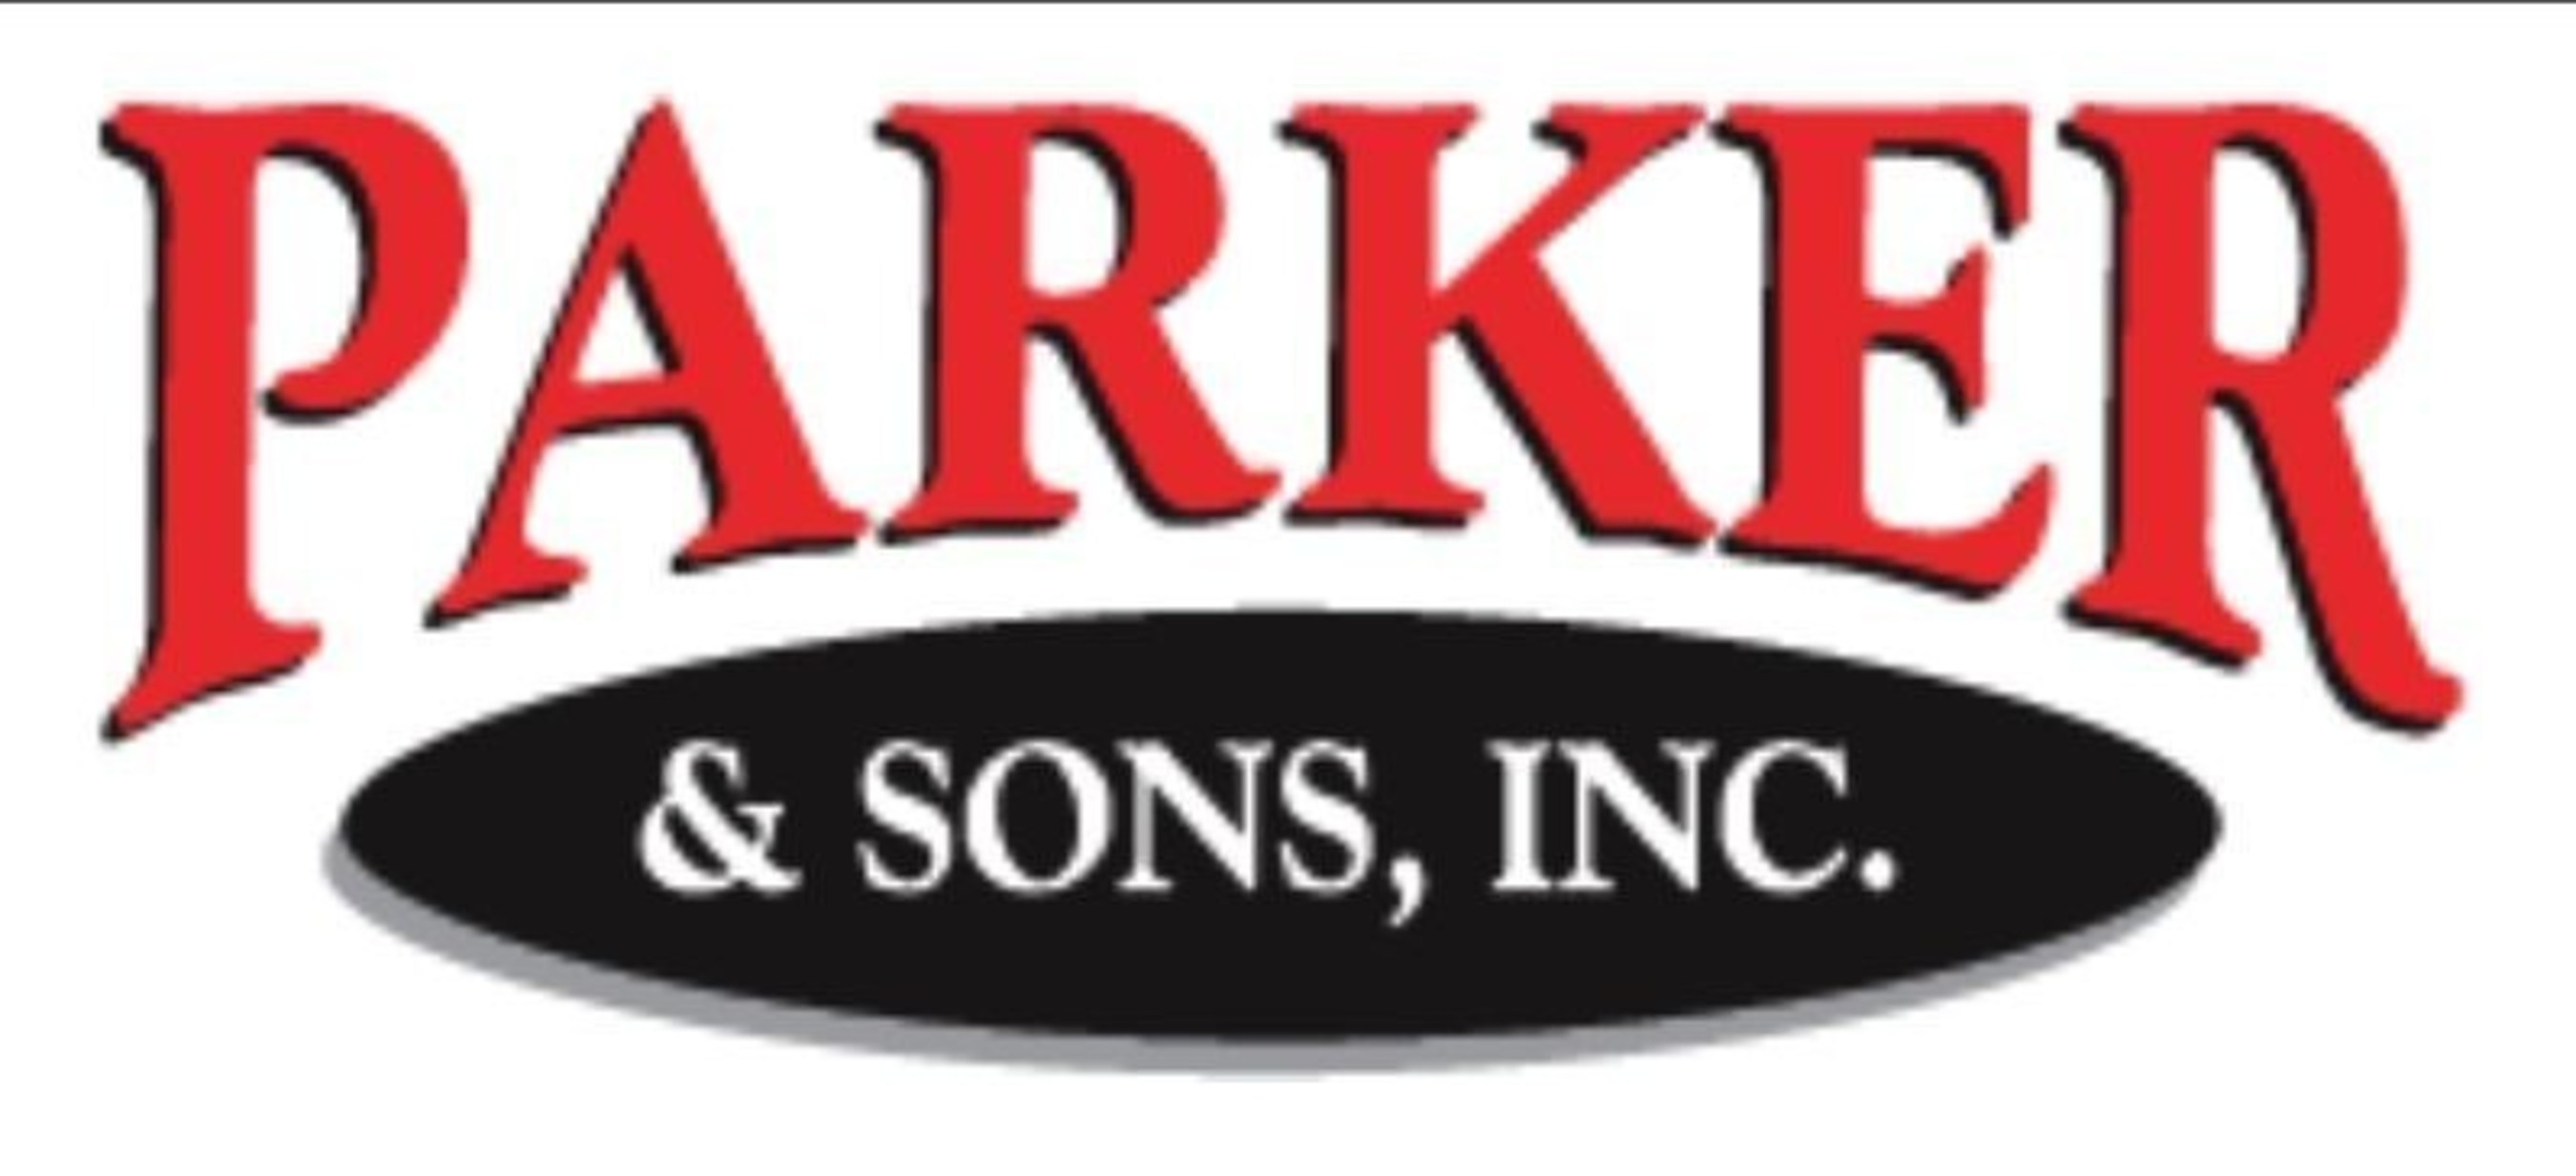 Parker and Sons Offers Sixty Minutes or Less Drain Clean Guarantee or Else It's Free